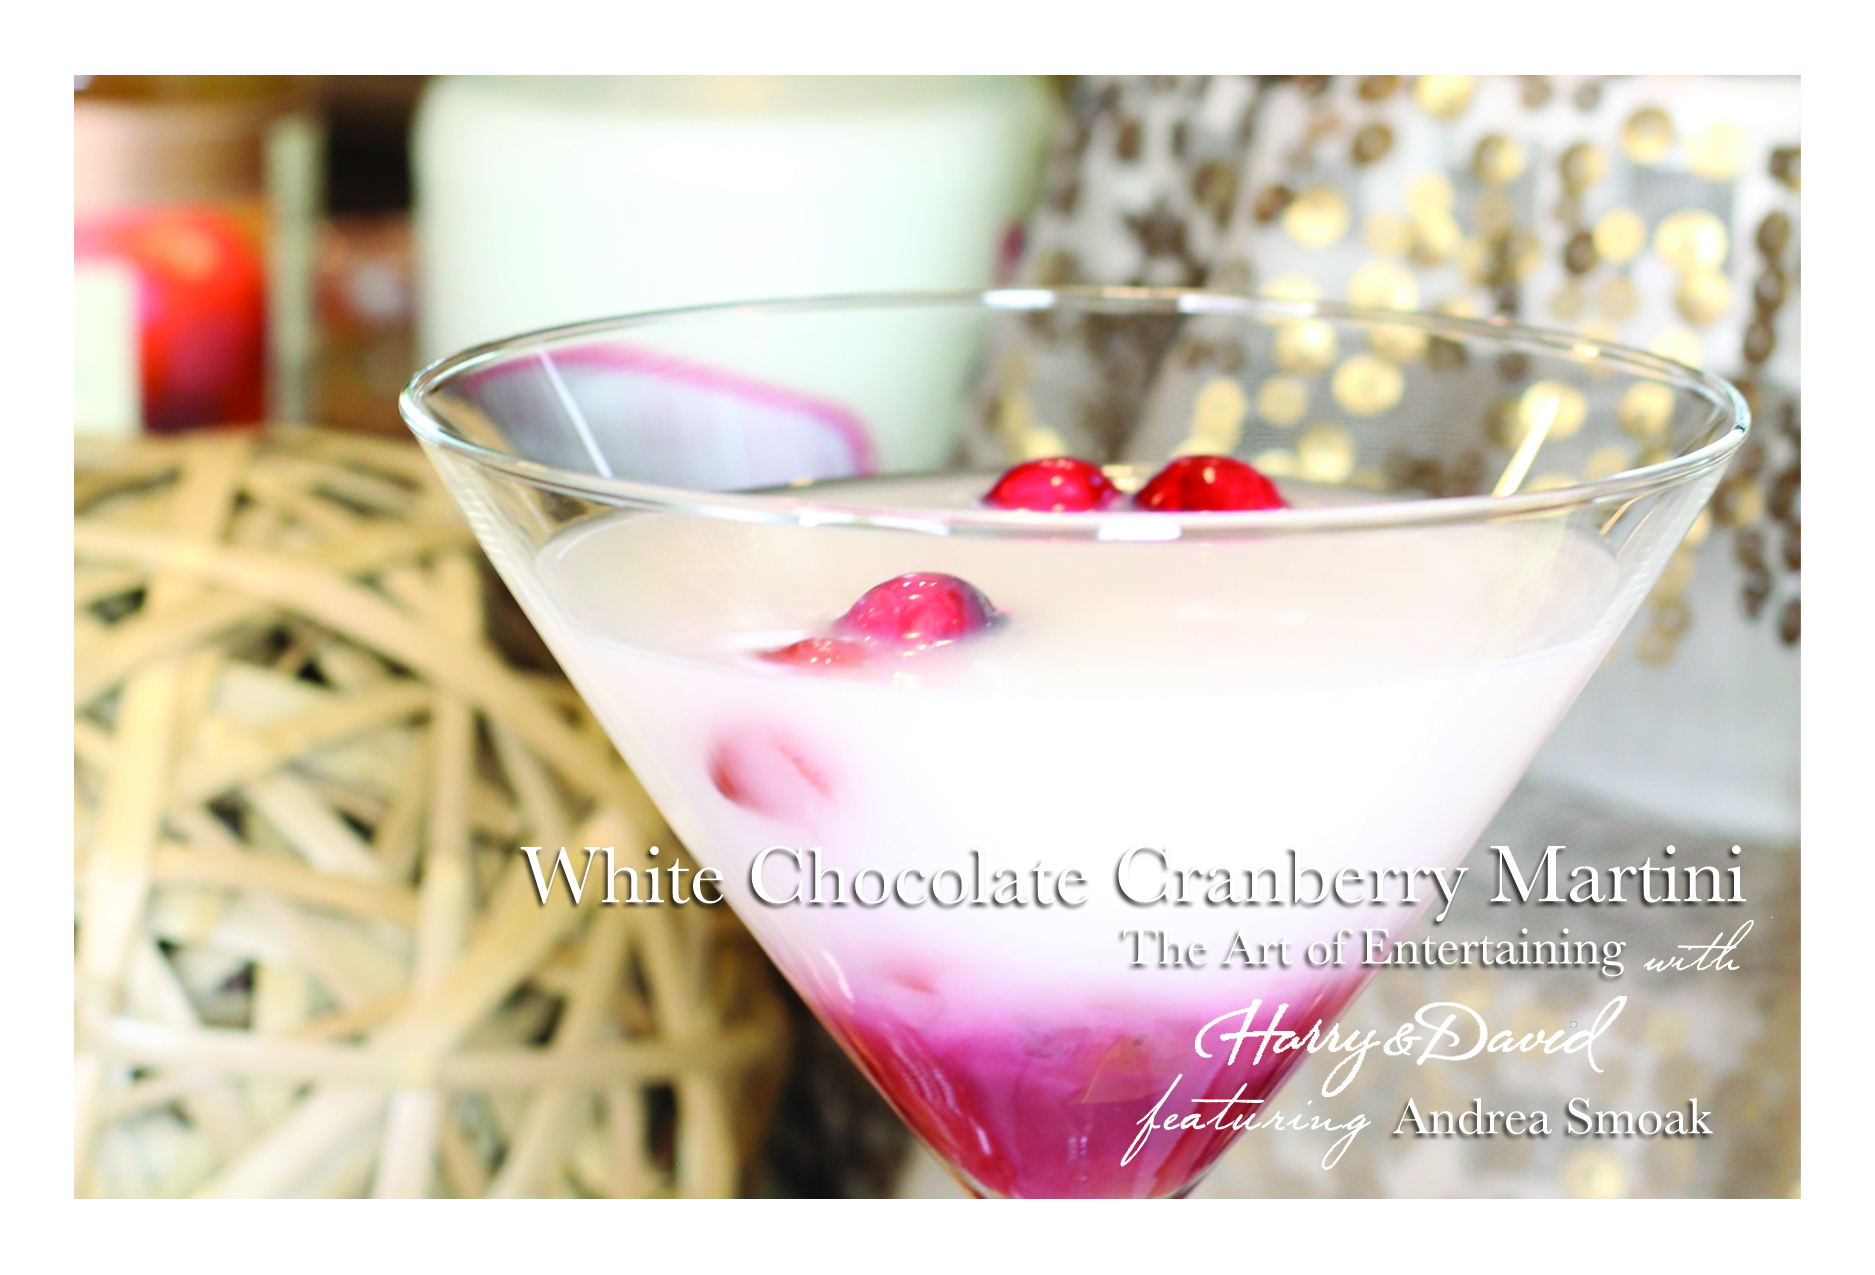 2_White_Chocolate_Cranberry_Martini_4x6_Landscape.jpg